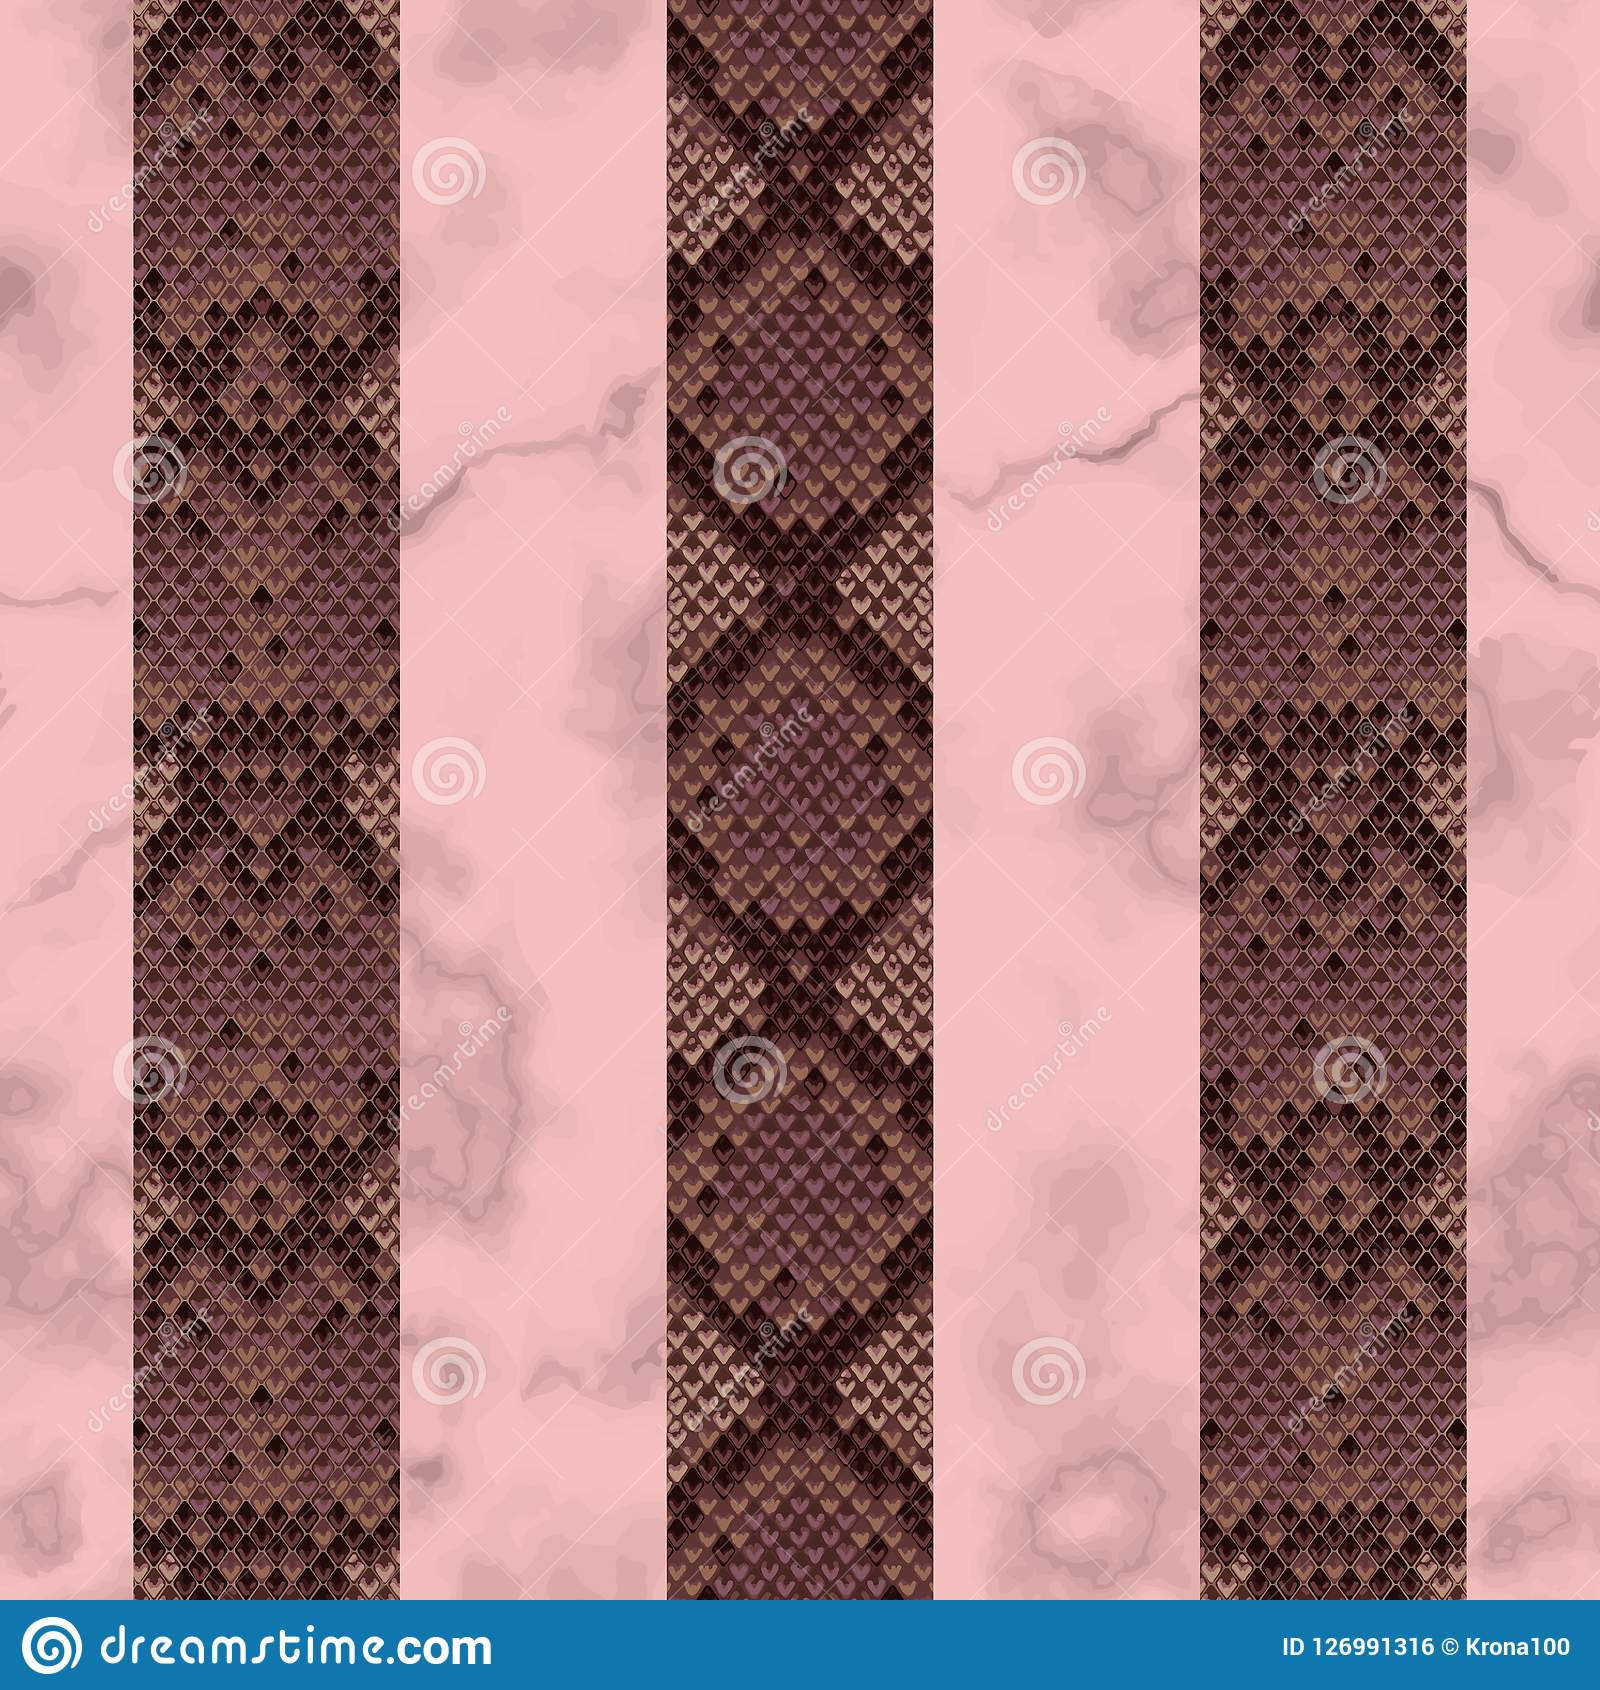 10e558af2def48 Snakeskin and marble pink and maroon vertical seamless pattern. Animal  luxury striped colorful repeat wallpaper for textile prints